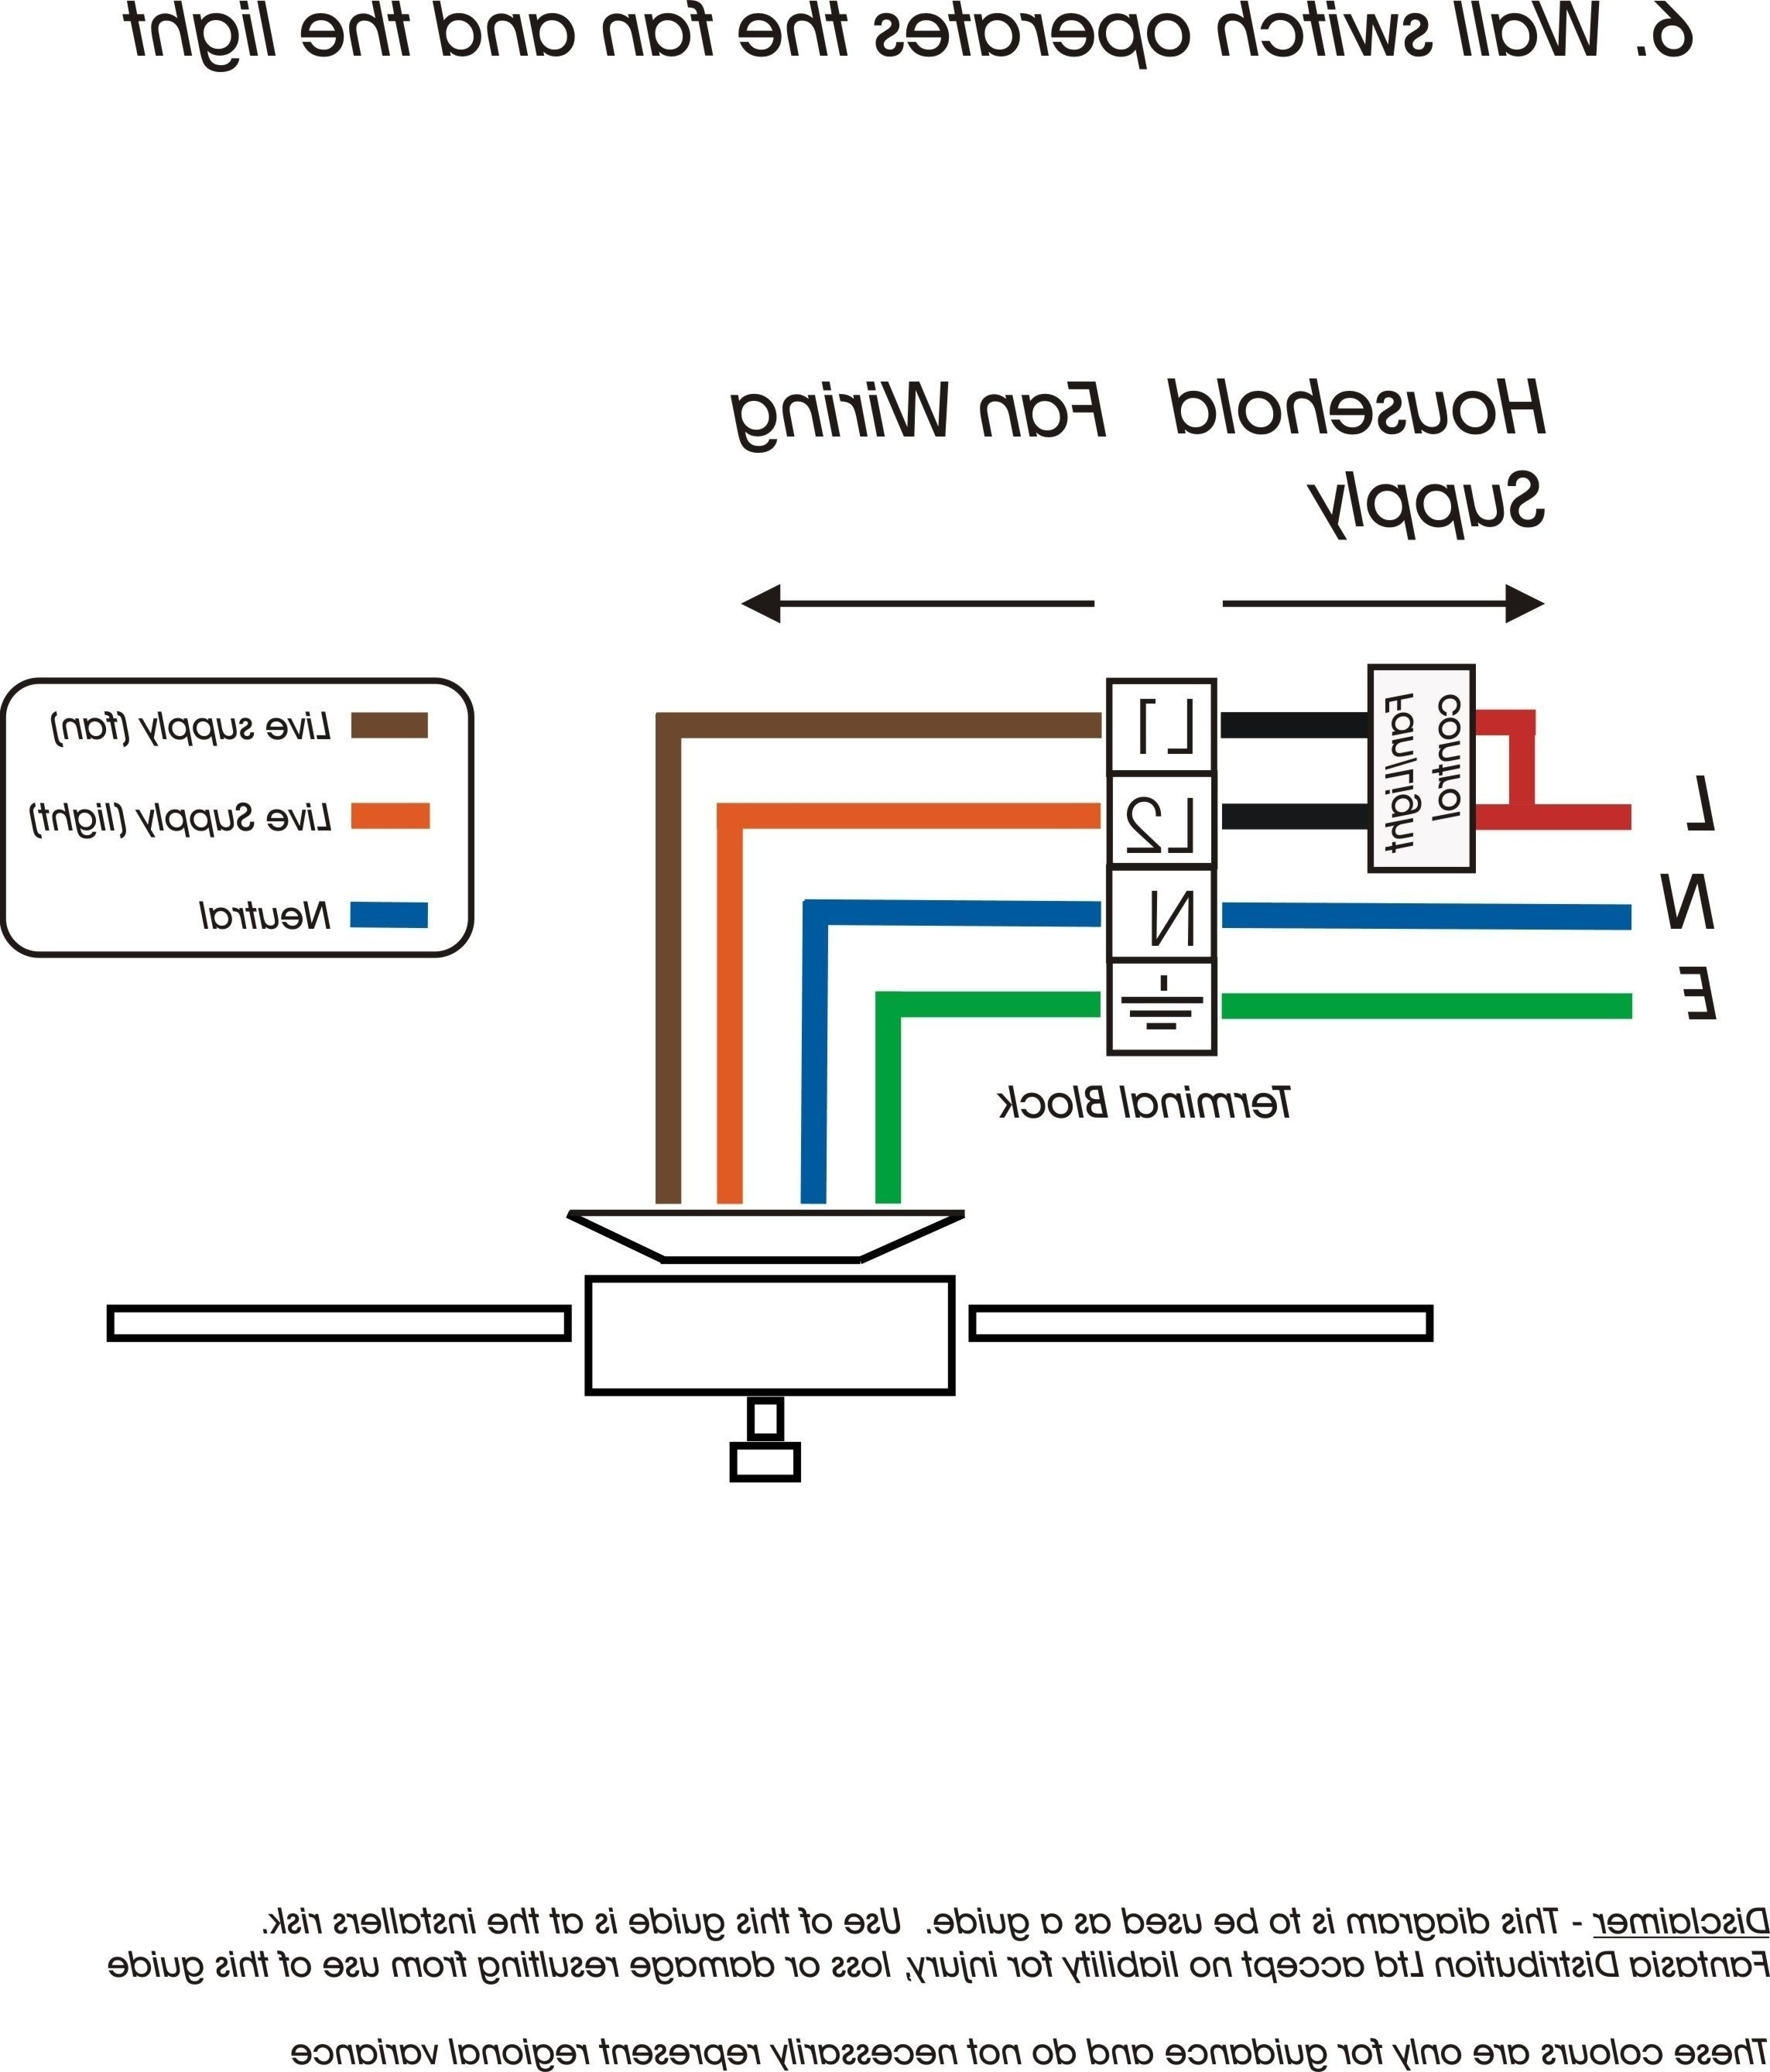 wiring diagram for jvc kd r650 jvc harness diagram, jvc kd r200 2001 Nissan Frontier Wiring-Diagram jvc kd r650 wiring diagram image on jvc harness diagram,